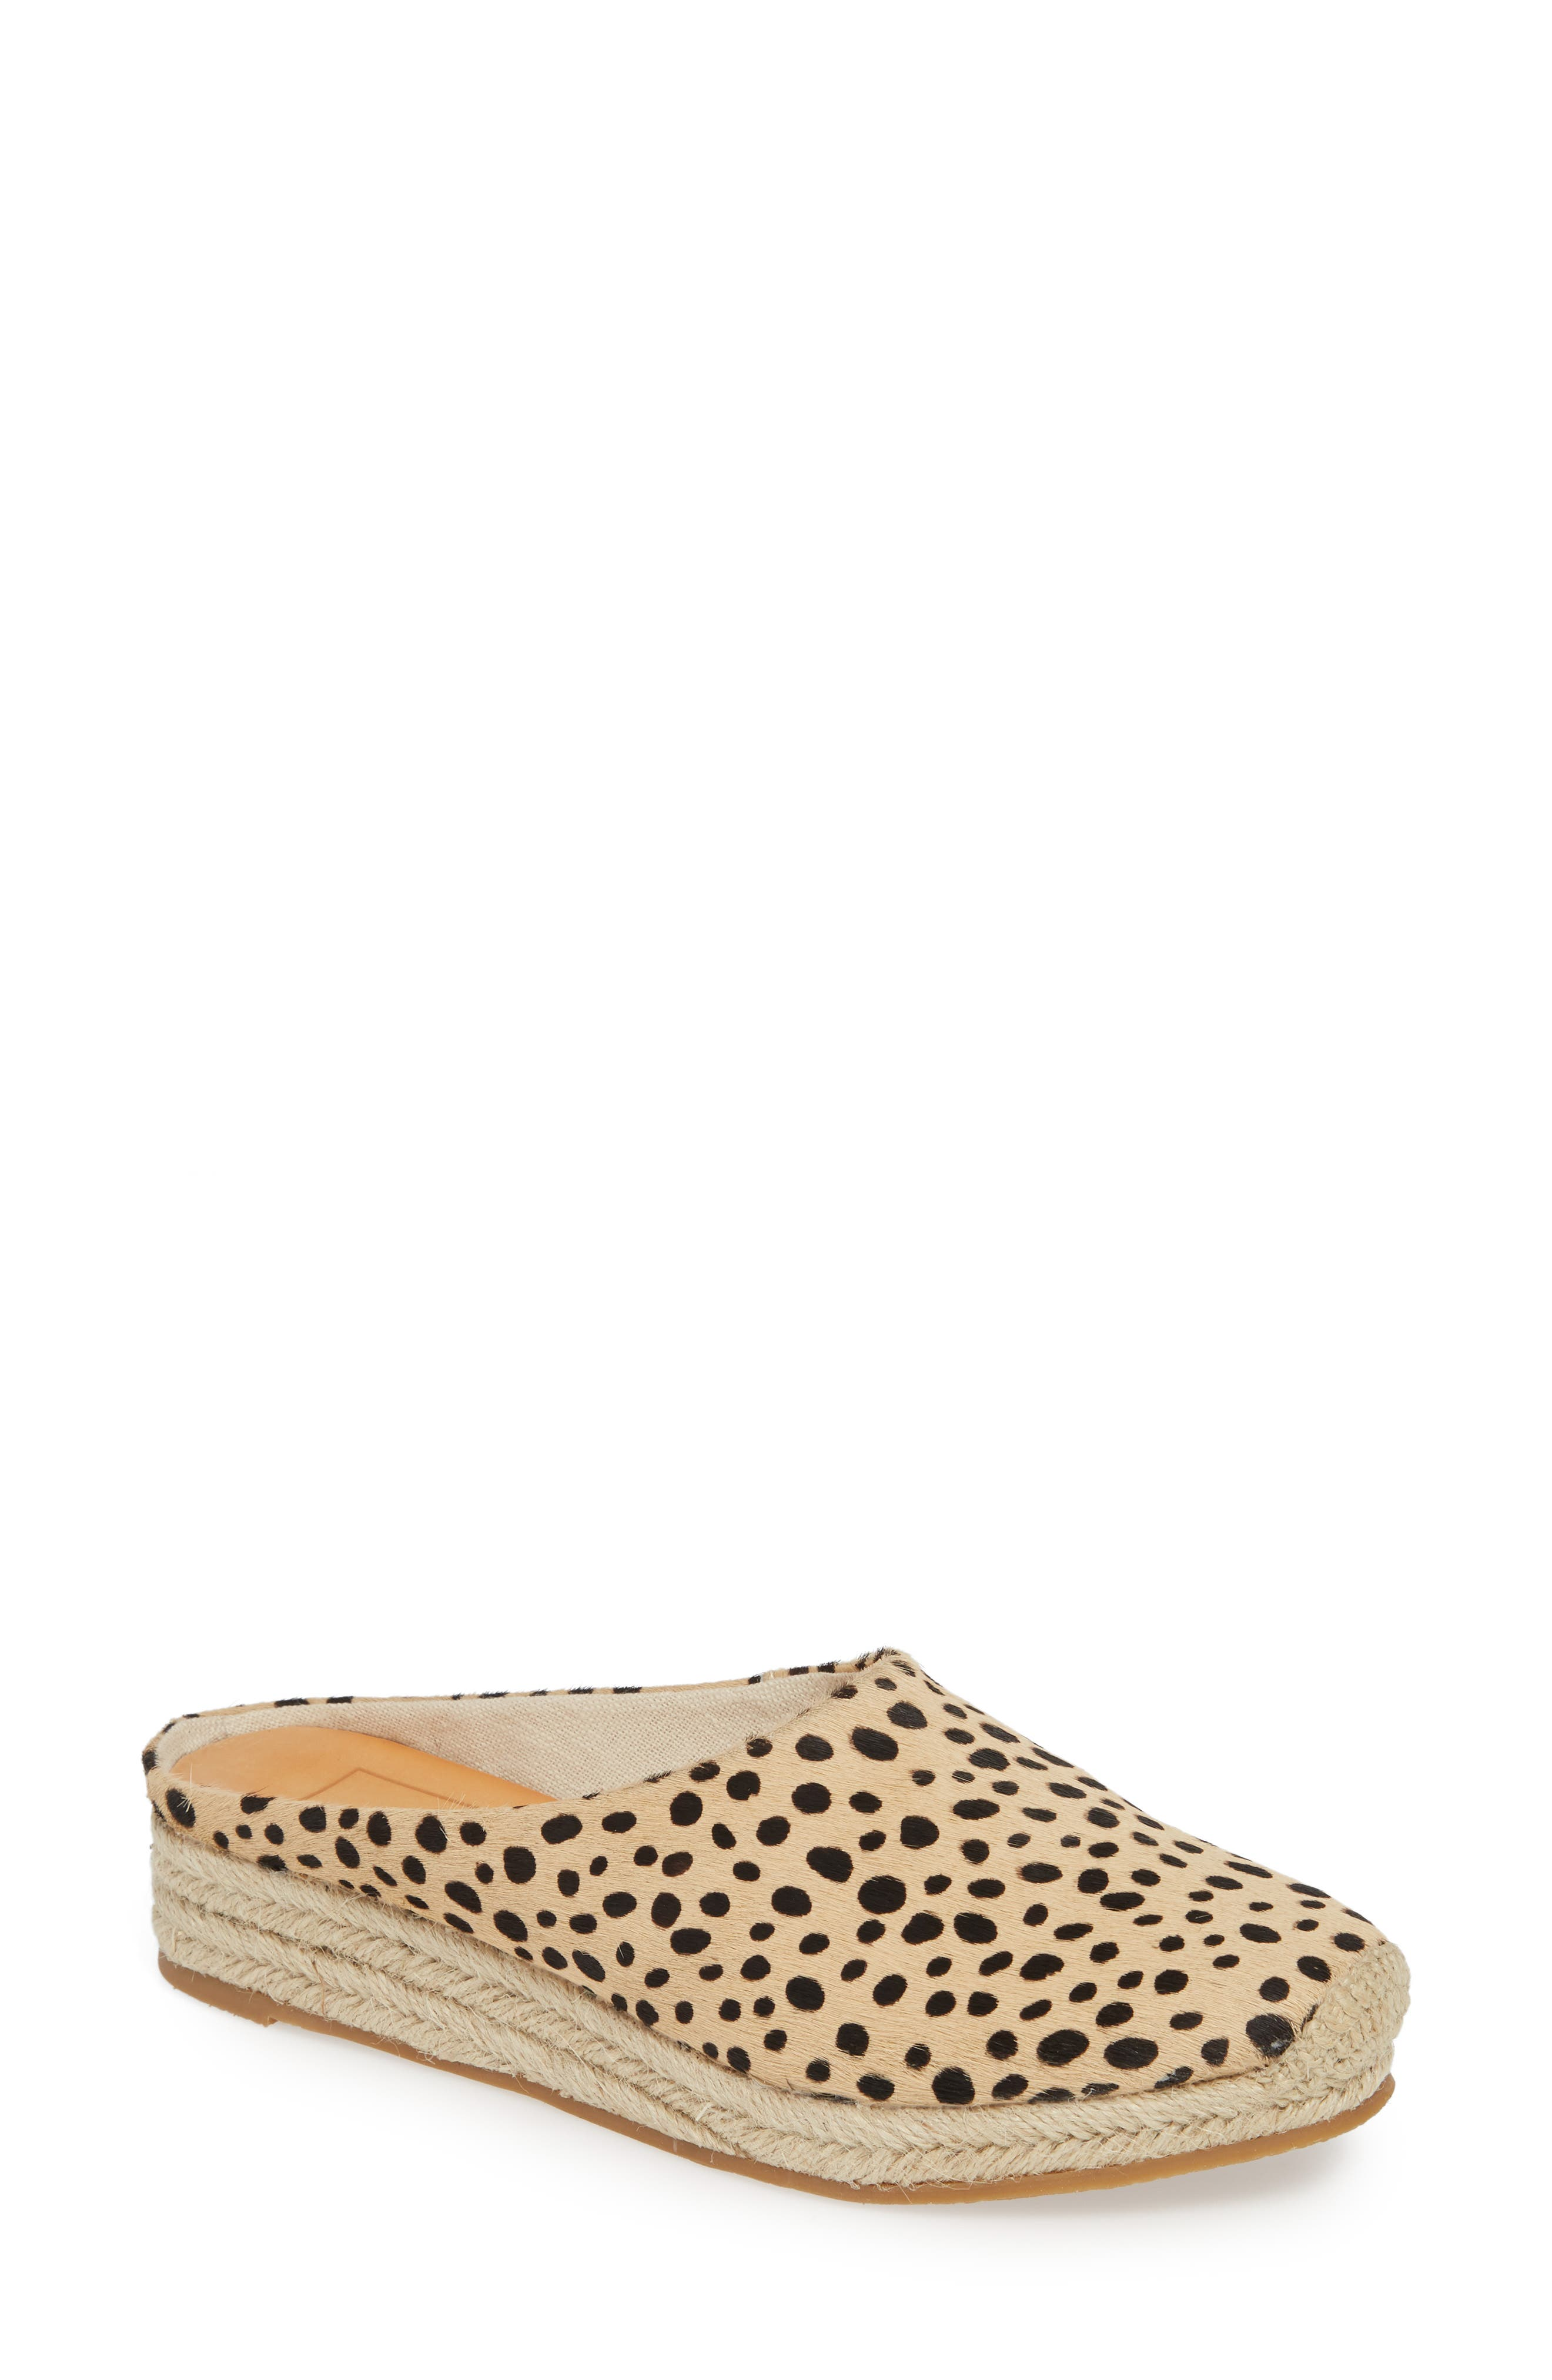 DOLCE VITA, Brandi Genuine Calf Hair Espadrille Mule, Main thumbnail 1, color, LEOPARD PRINT CALF HAIR